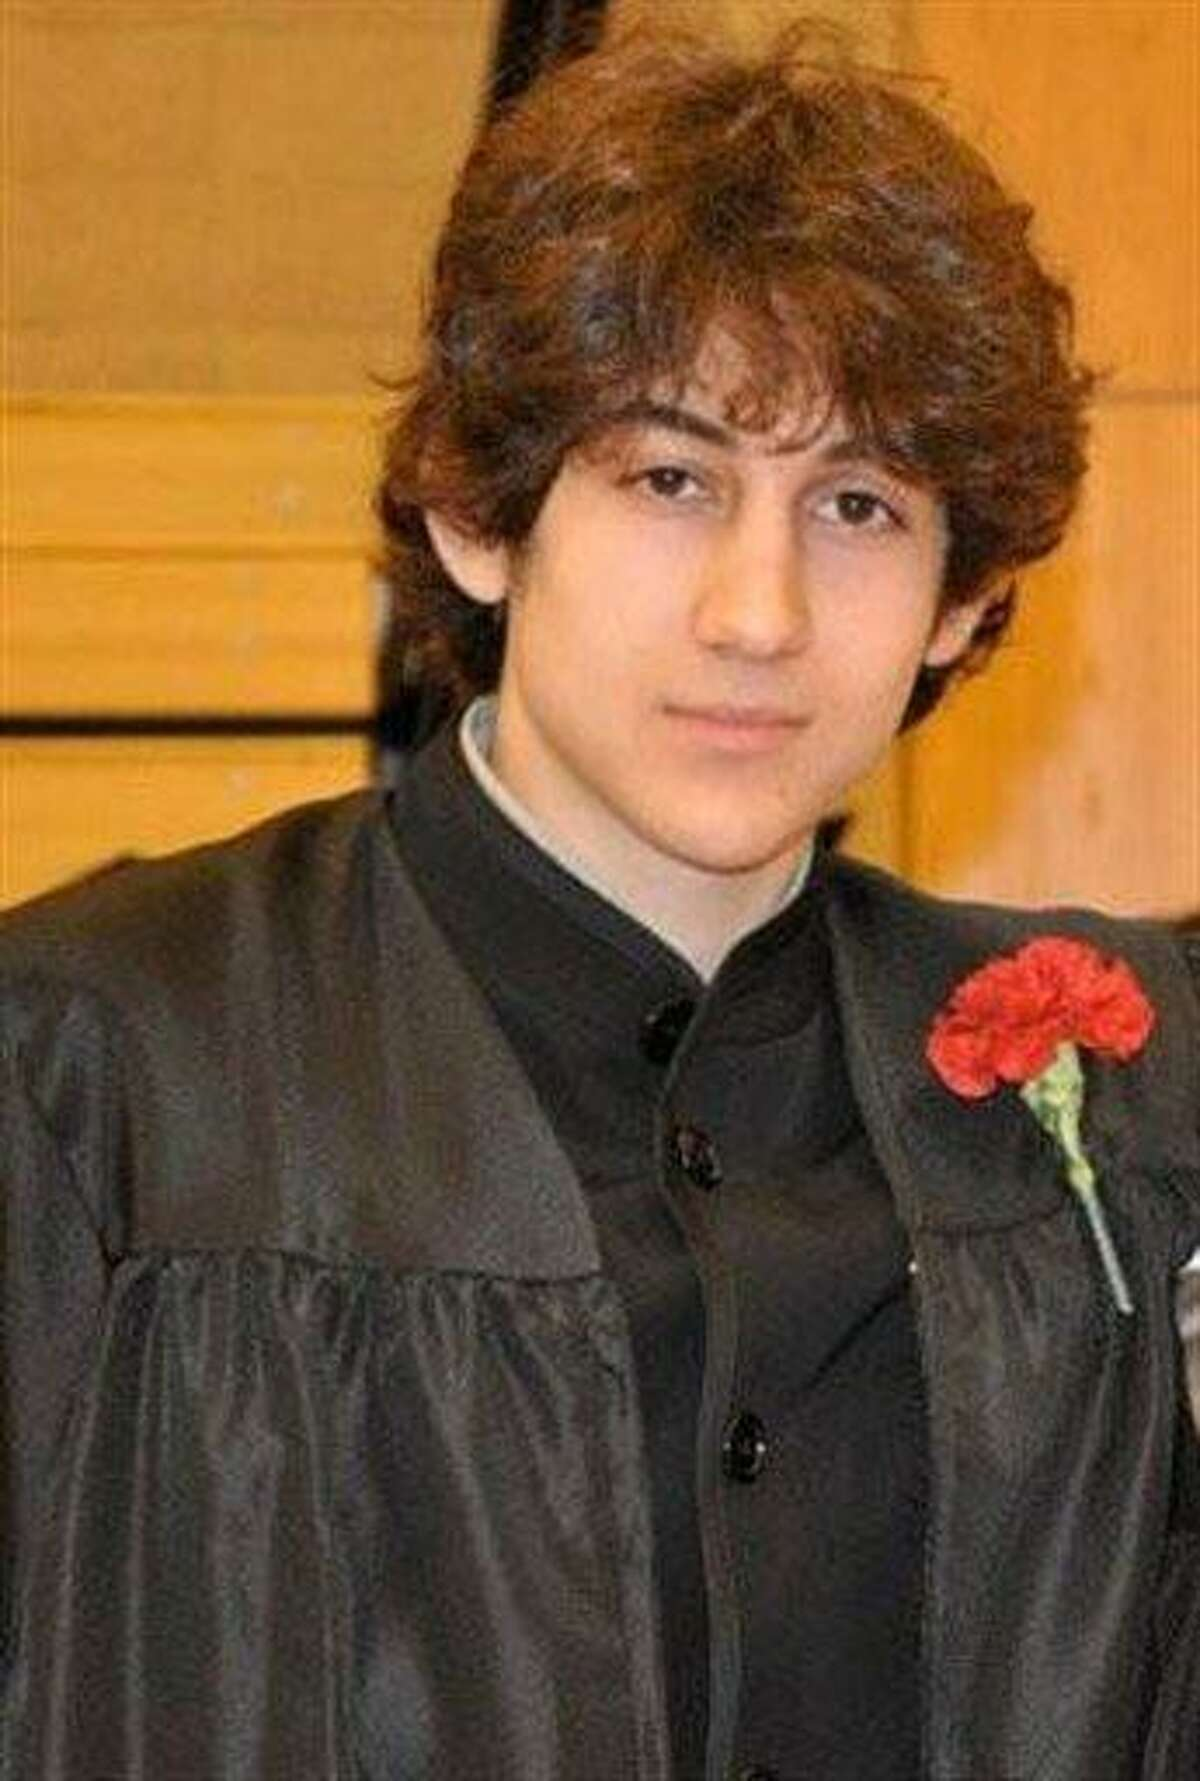 In this undated photo, Dzhokhar A. Tsarnaev poses for a photo after graduating from Cambridge Rindge and Latin High School. (AP Photo/Robin Young)